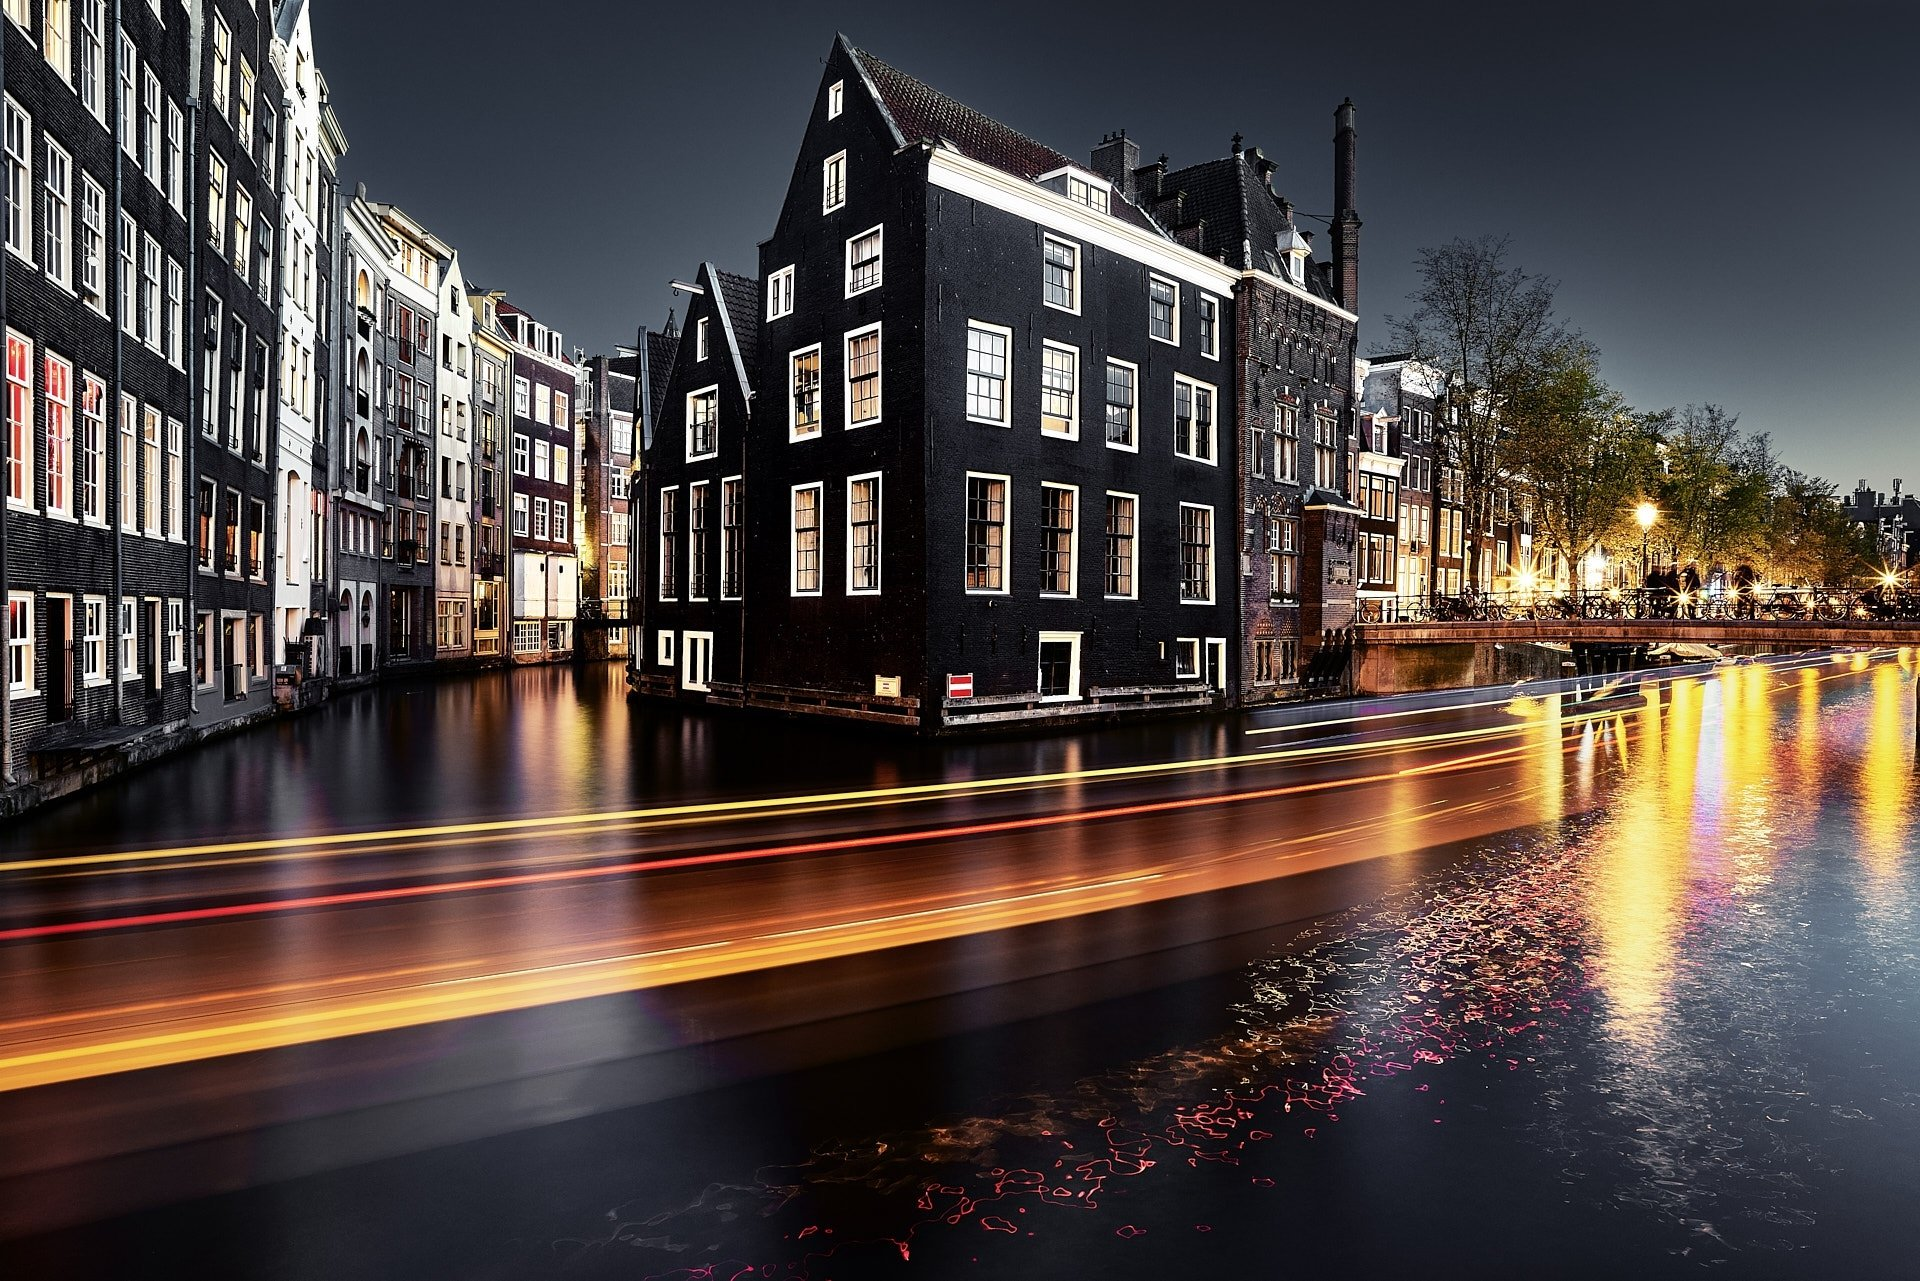 Man Made - Amsterdam  City Night Time-Lapse Building House Canal Netherlands Wallpaper